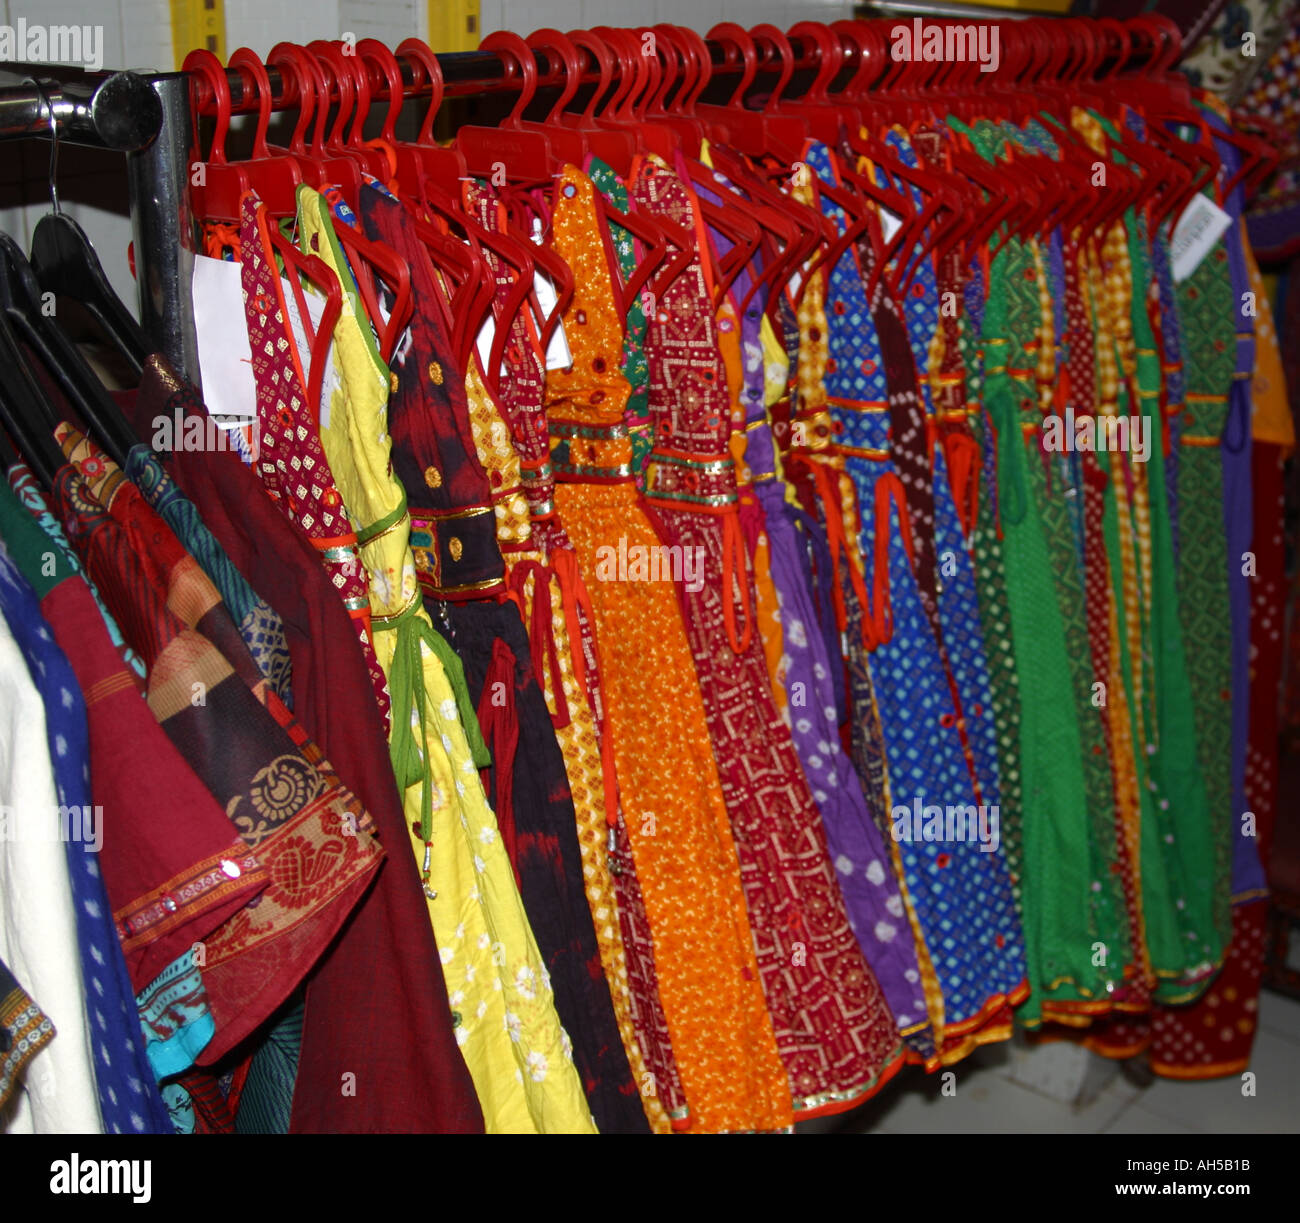 2a3a851888 Colourful Dresses hanging on rail in Indian dress shop Stock Photo ...